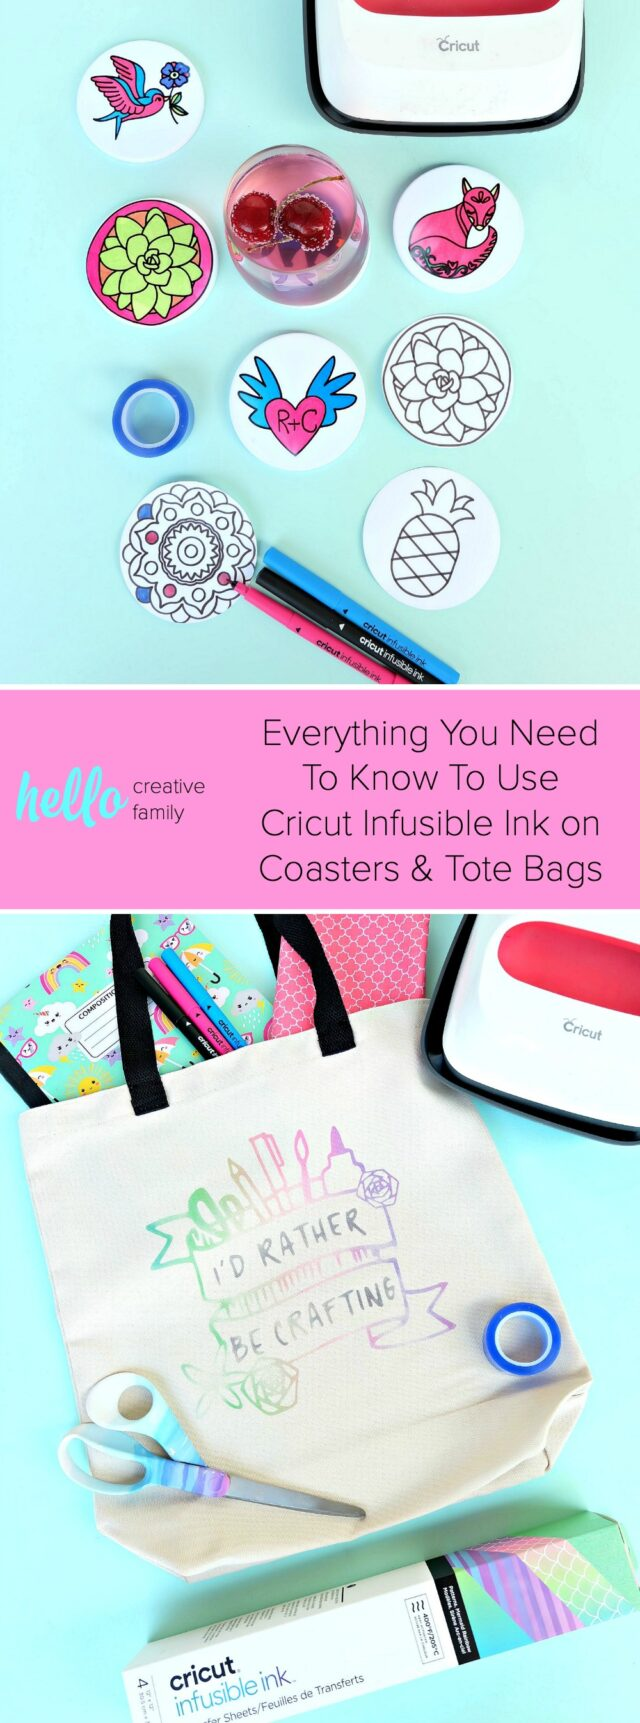 We're sharing all the tips and tricks that you need to know to use Cricut Infusible Ink! Follow along as we share step by step instructions, as well as handy hints for making Infusible Ink Coasters and an awesome rainbow crafting tote bag! #CricutMade #handmade #infusibleink #sponsored